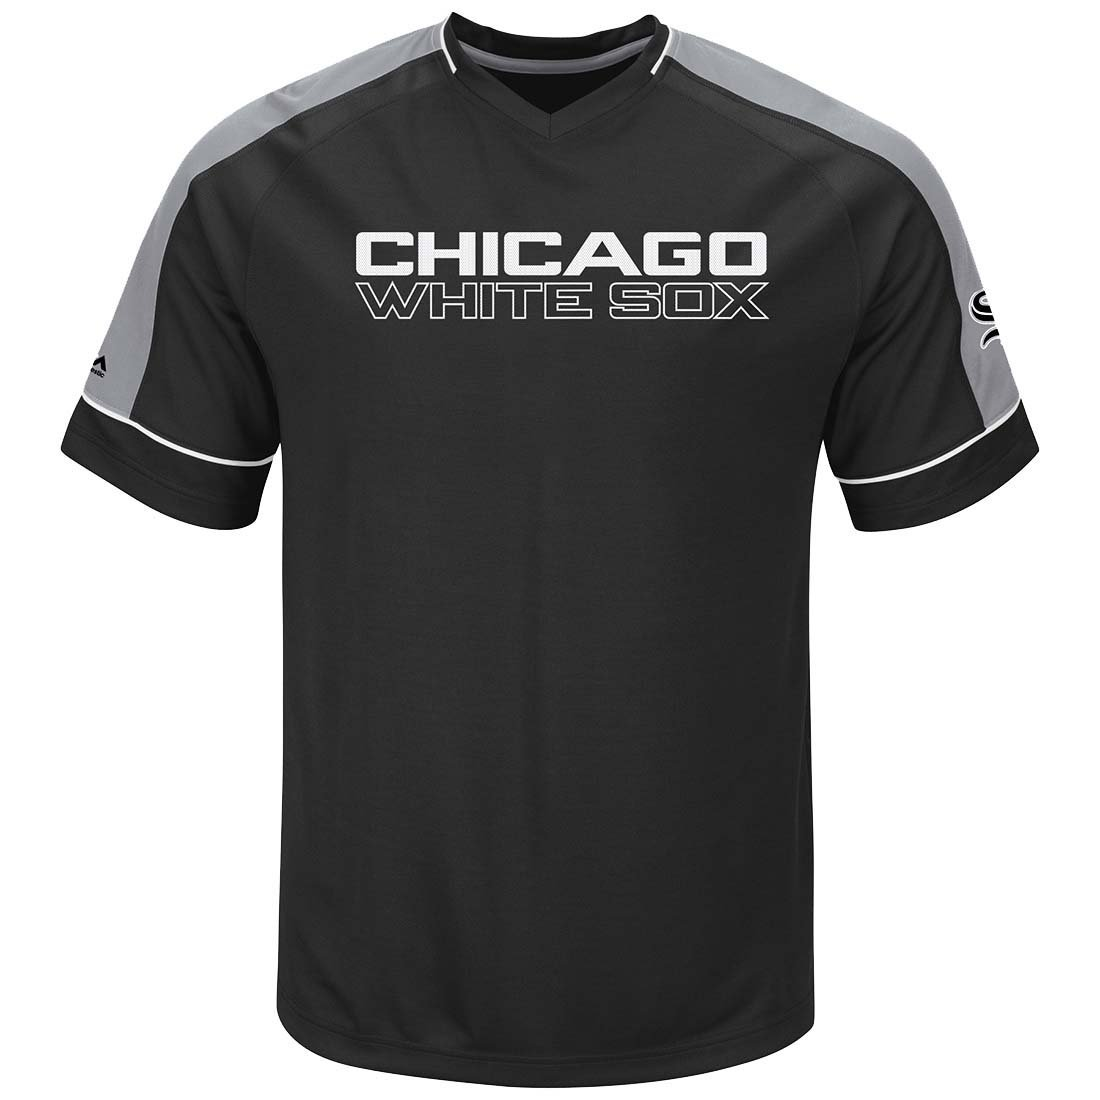 Cheap Chicago Lead, find Chicago Lead deals on line at Alibaba.com